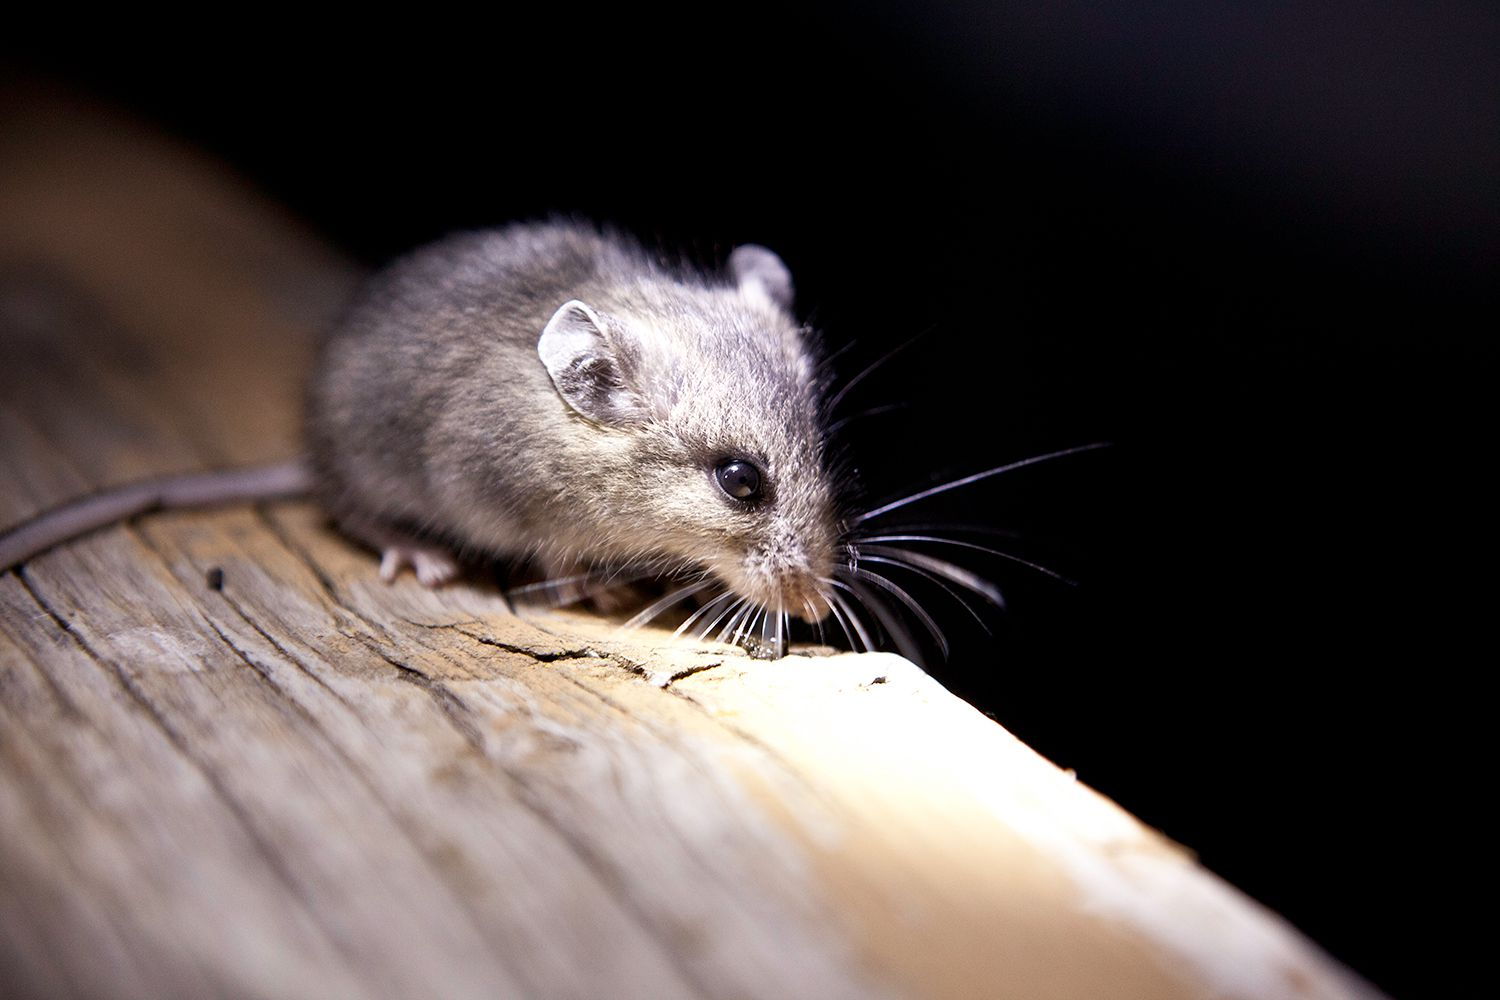 12 Common Questions and Answers About Mice in the House